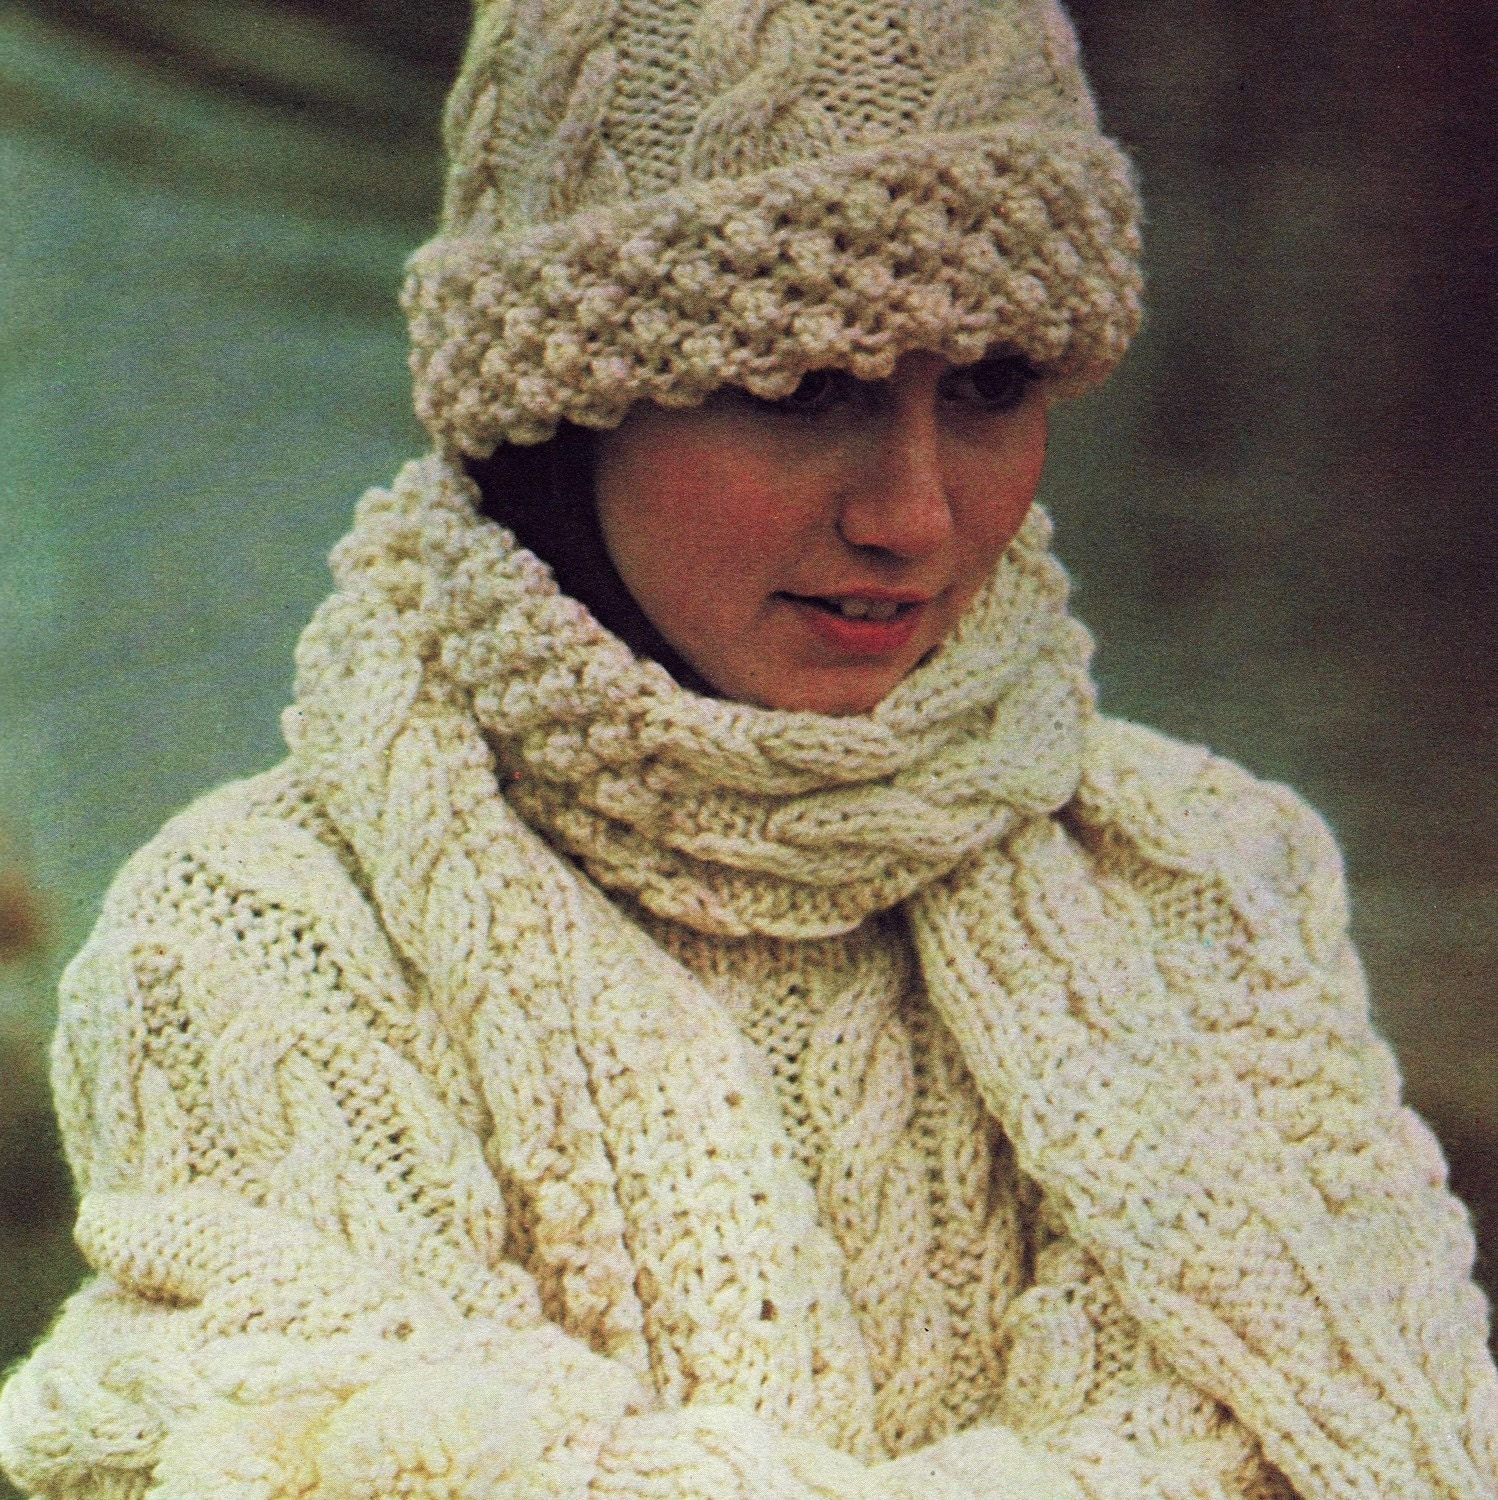 Knitting Patterns Scarf And Hat : HAT SCARF KNITTING PATTERNS   Free Patterns